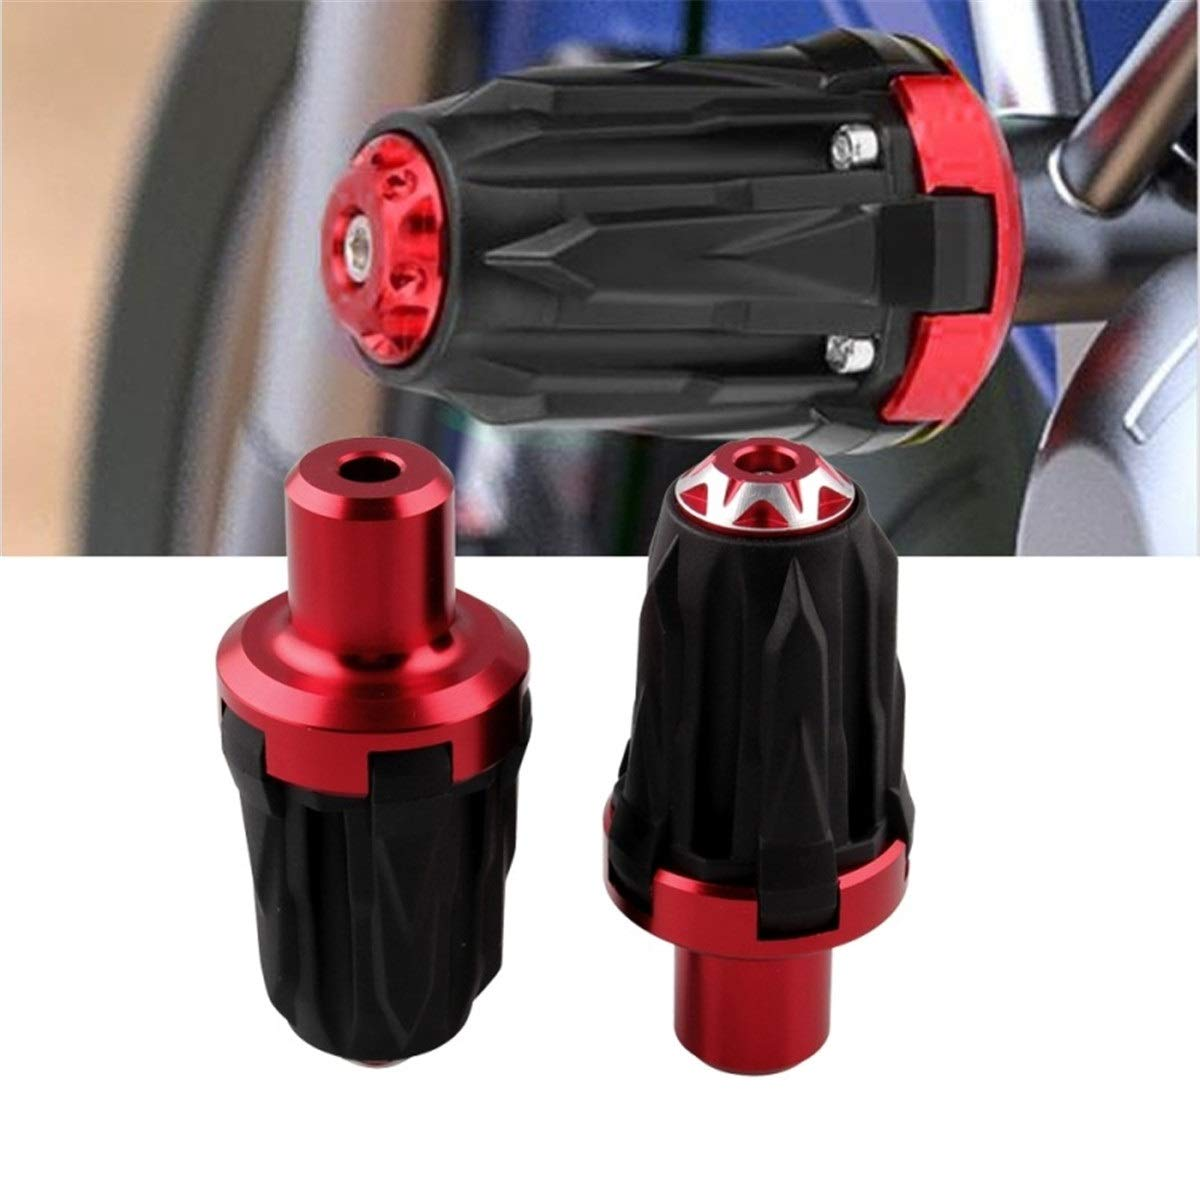 CONGCASE Motorcycle Modification Accessary, A Pair of 10mm Screw Hole Car Motorcycle Limited Body Anti-Drop Rod (Color : Red) by CONGCASE